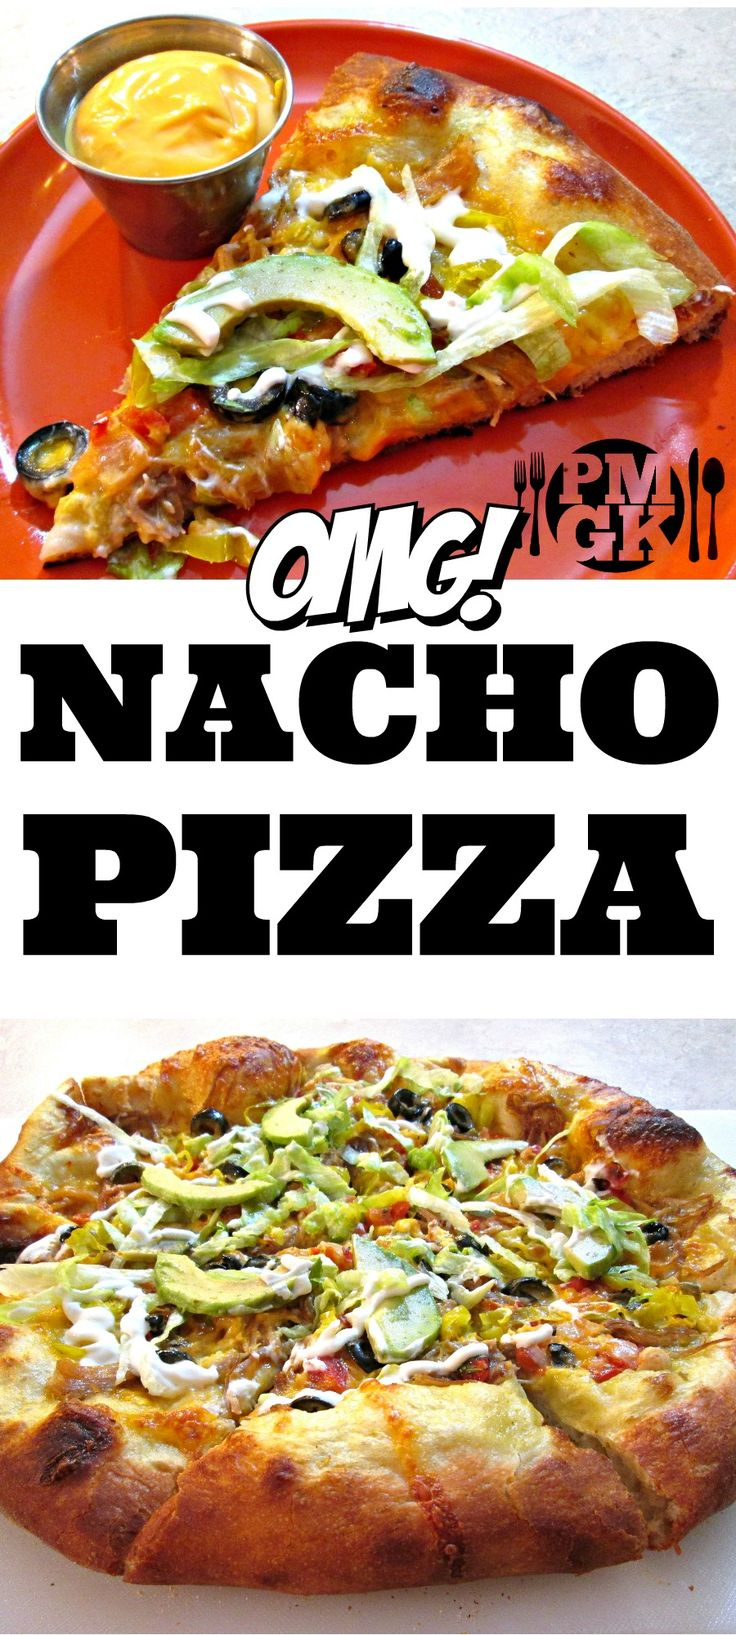 Nacho Pizza Recipe - If you love Pizza and you love Nachos, why not combine them and make the ultimate Nacho Pizza with all of your favorite toppings.  Watch the video tutorial and I'll show you how easy it is to make this Pizza Pie!  Poor Man's Gourmet Kitchen